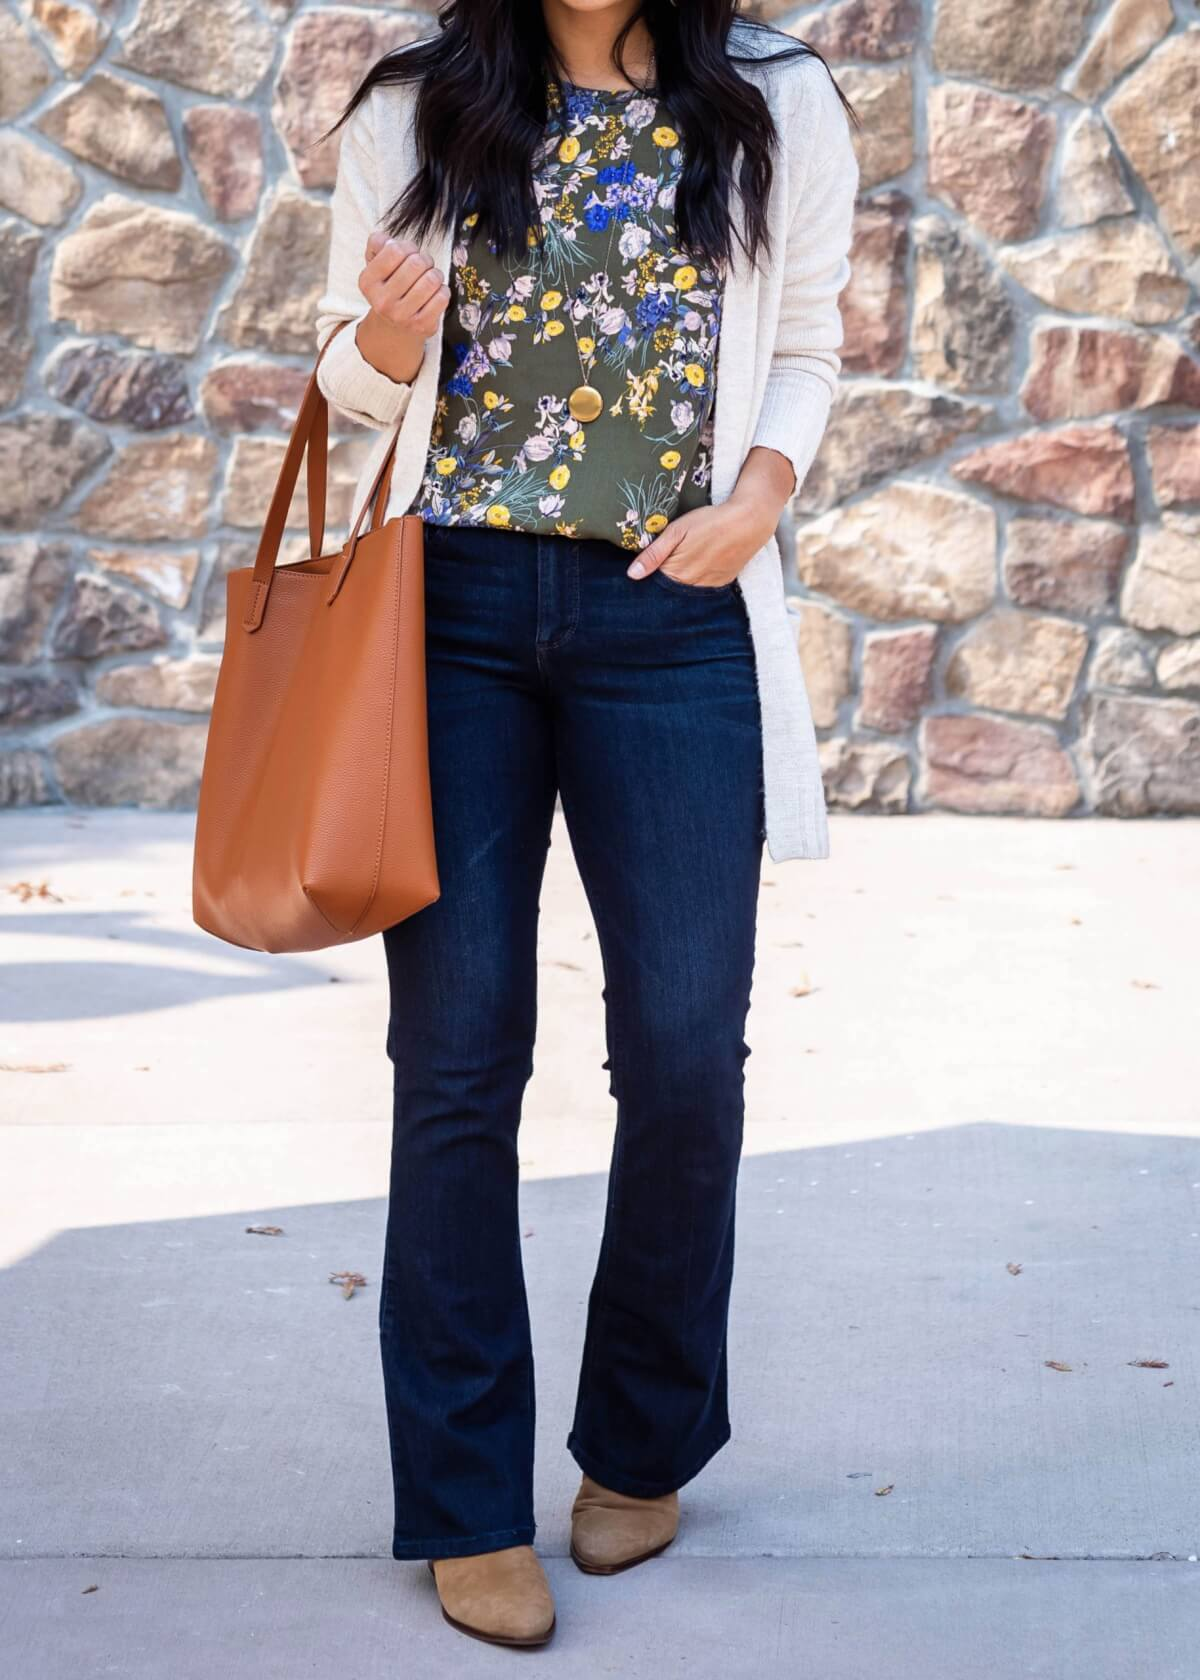 Dressy Casual Fall Outfit: olive floral print top + dark blue bootcut jeans + cream long cardigan + tan suede pointed toe booties + gold pendant necklace + tan tote close up